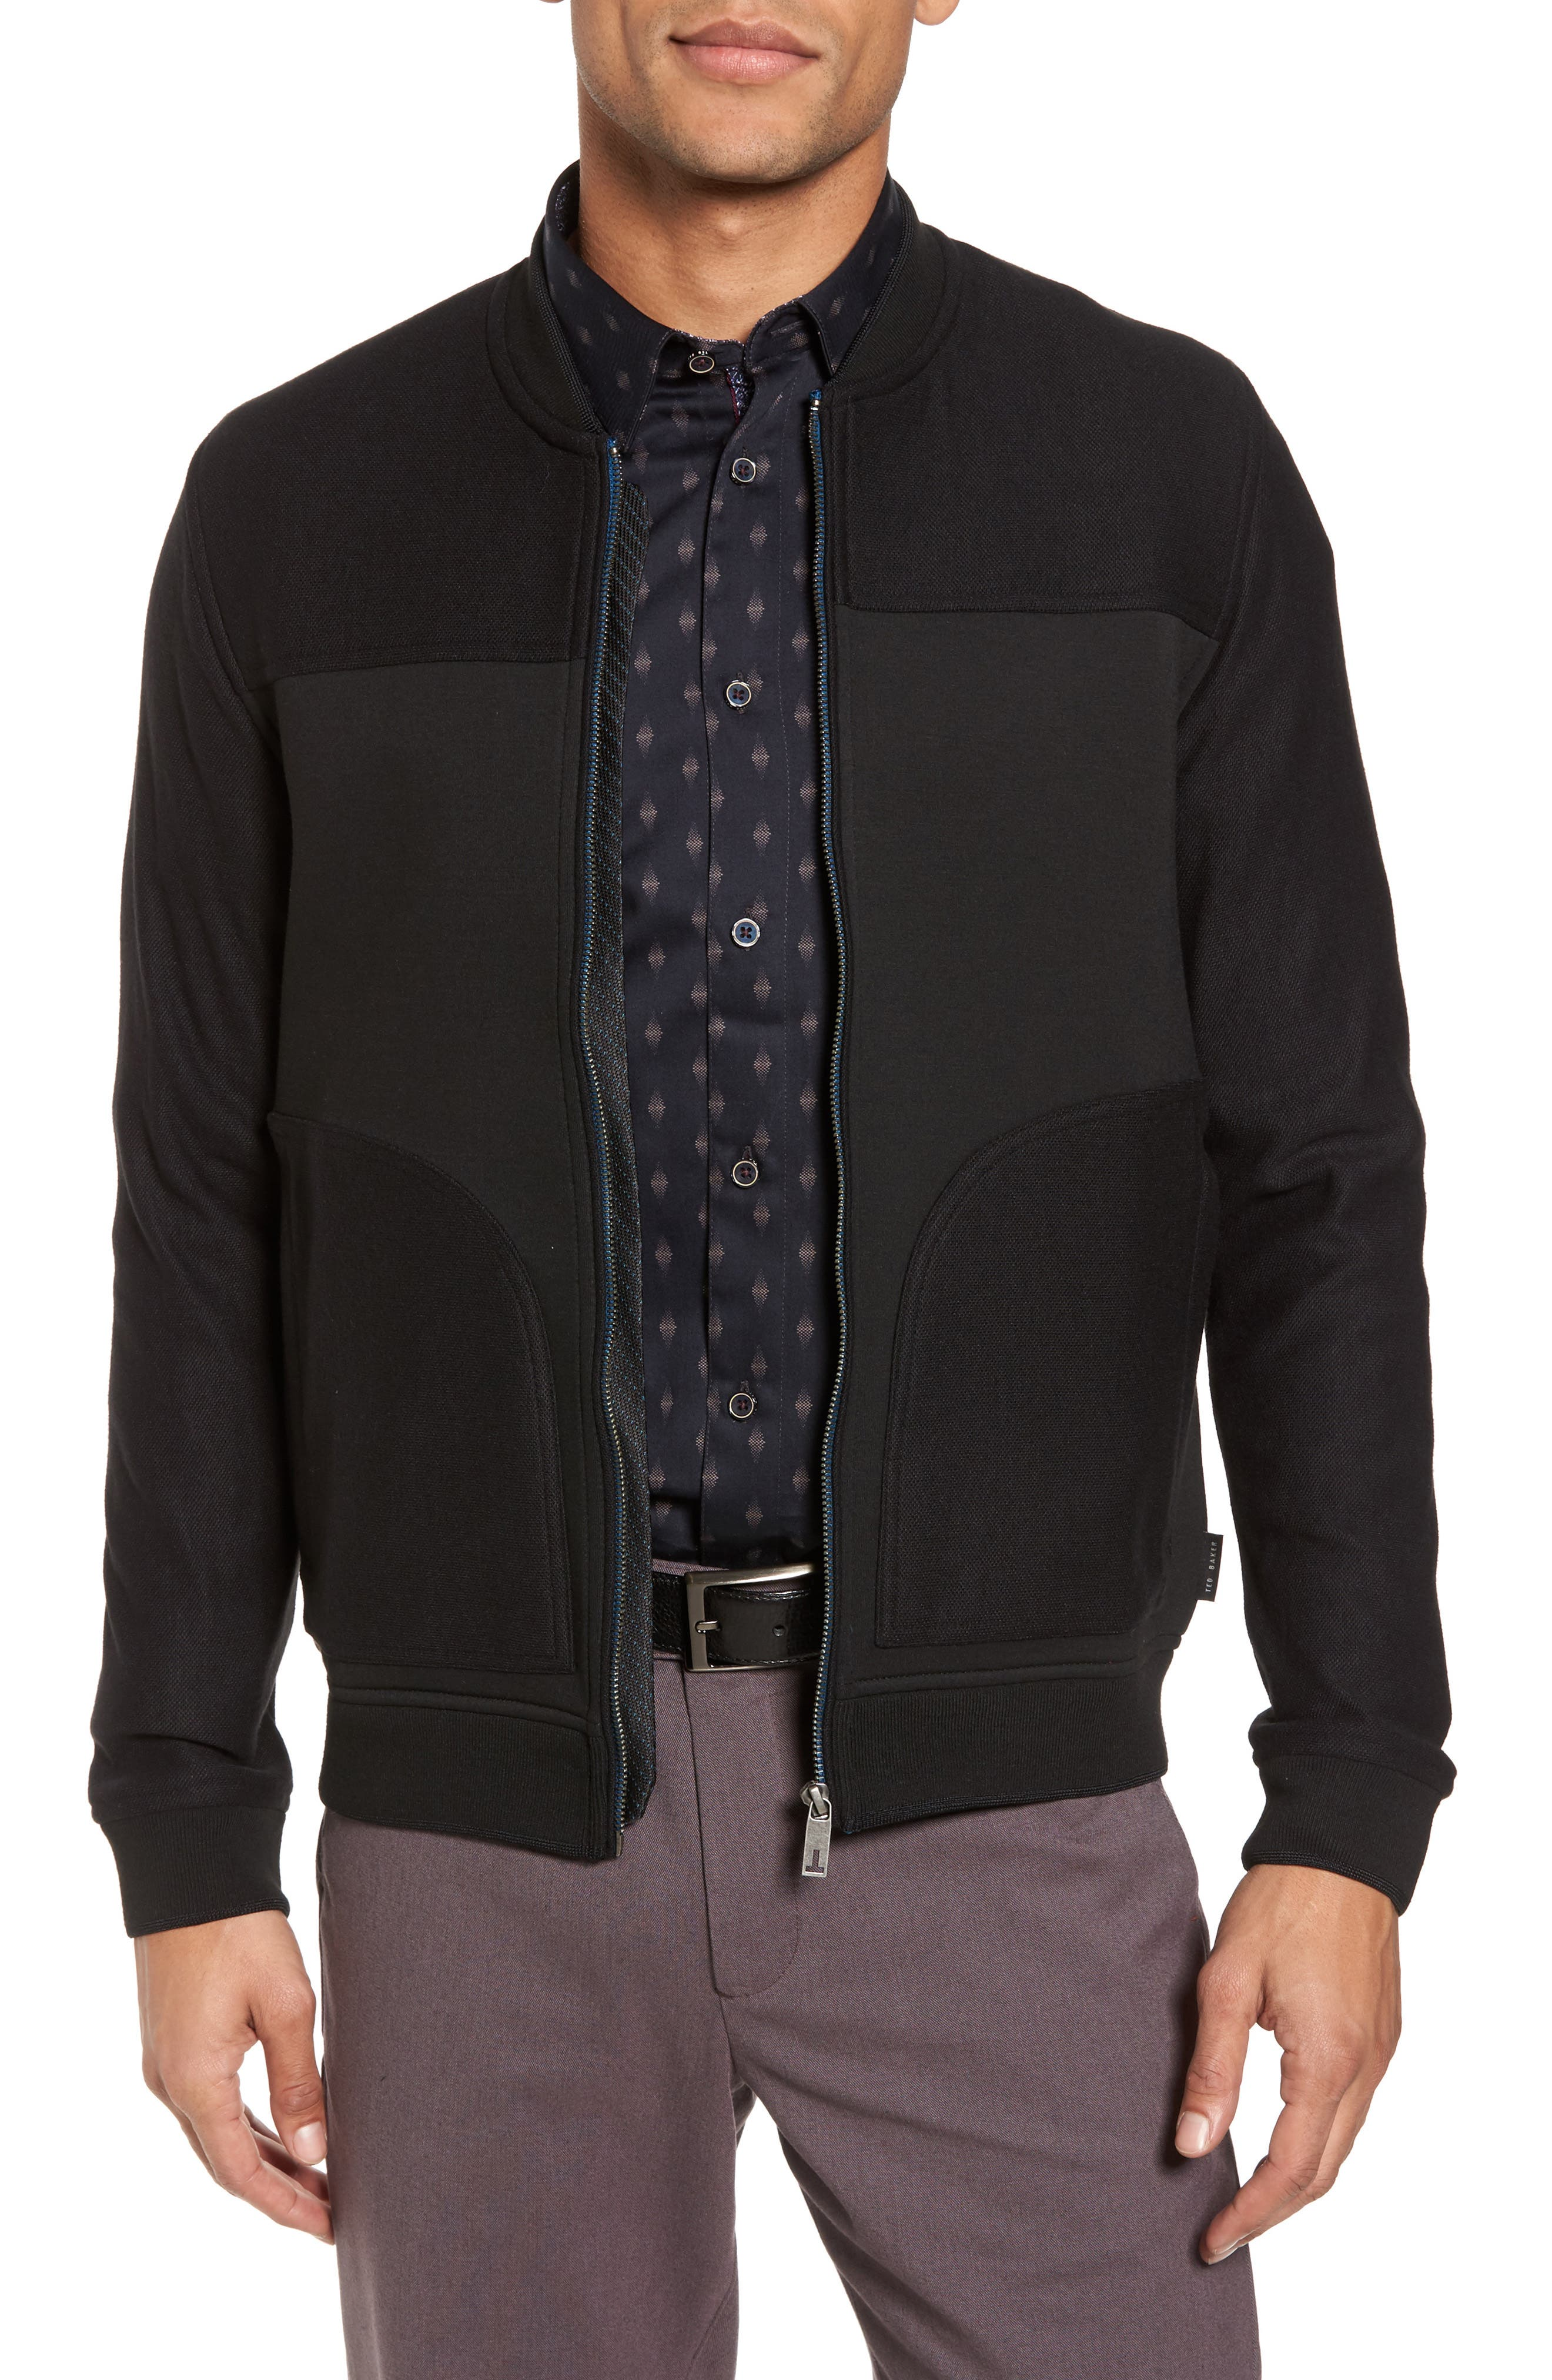 Outme Trim Textured Bomber,                         Main,                         color, Black